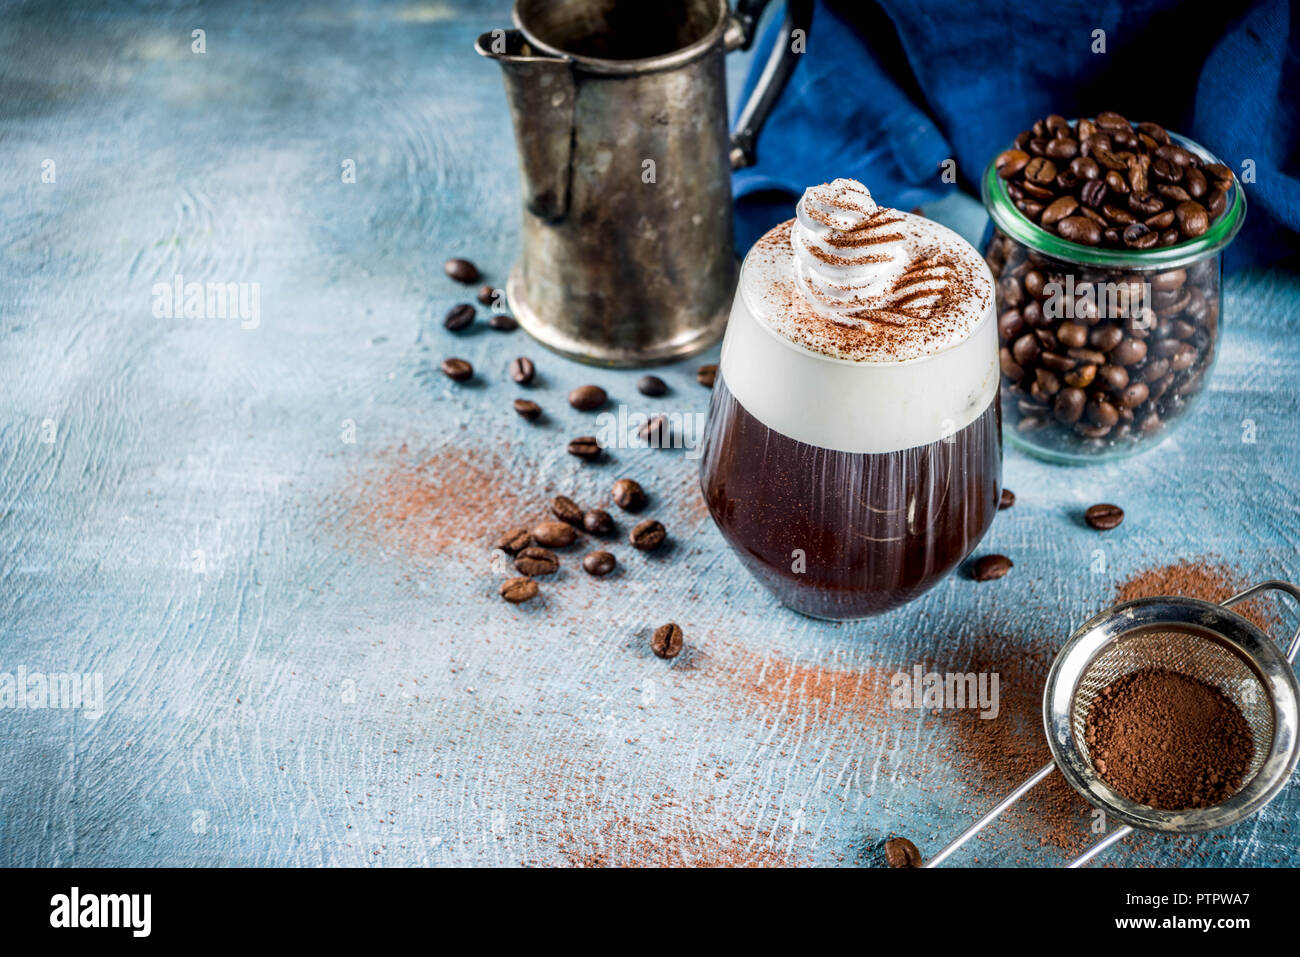 Autumn espresso drink ideas, Irish coffee cocktail with whipped cream and cocoa, blue concrete background copy space Stock Photo